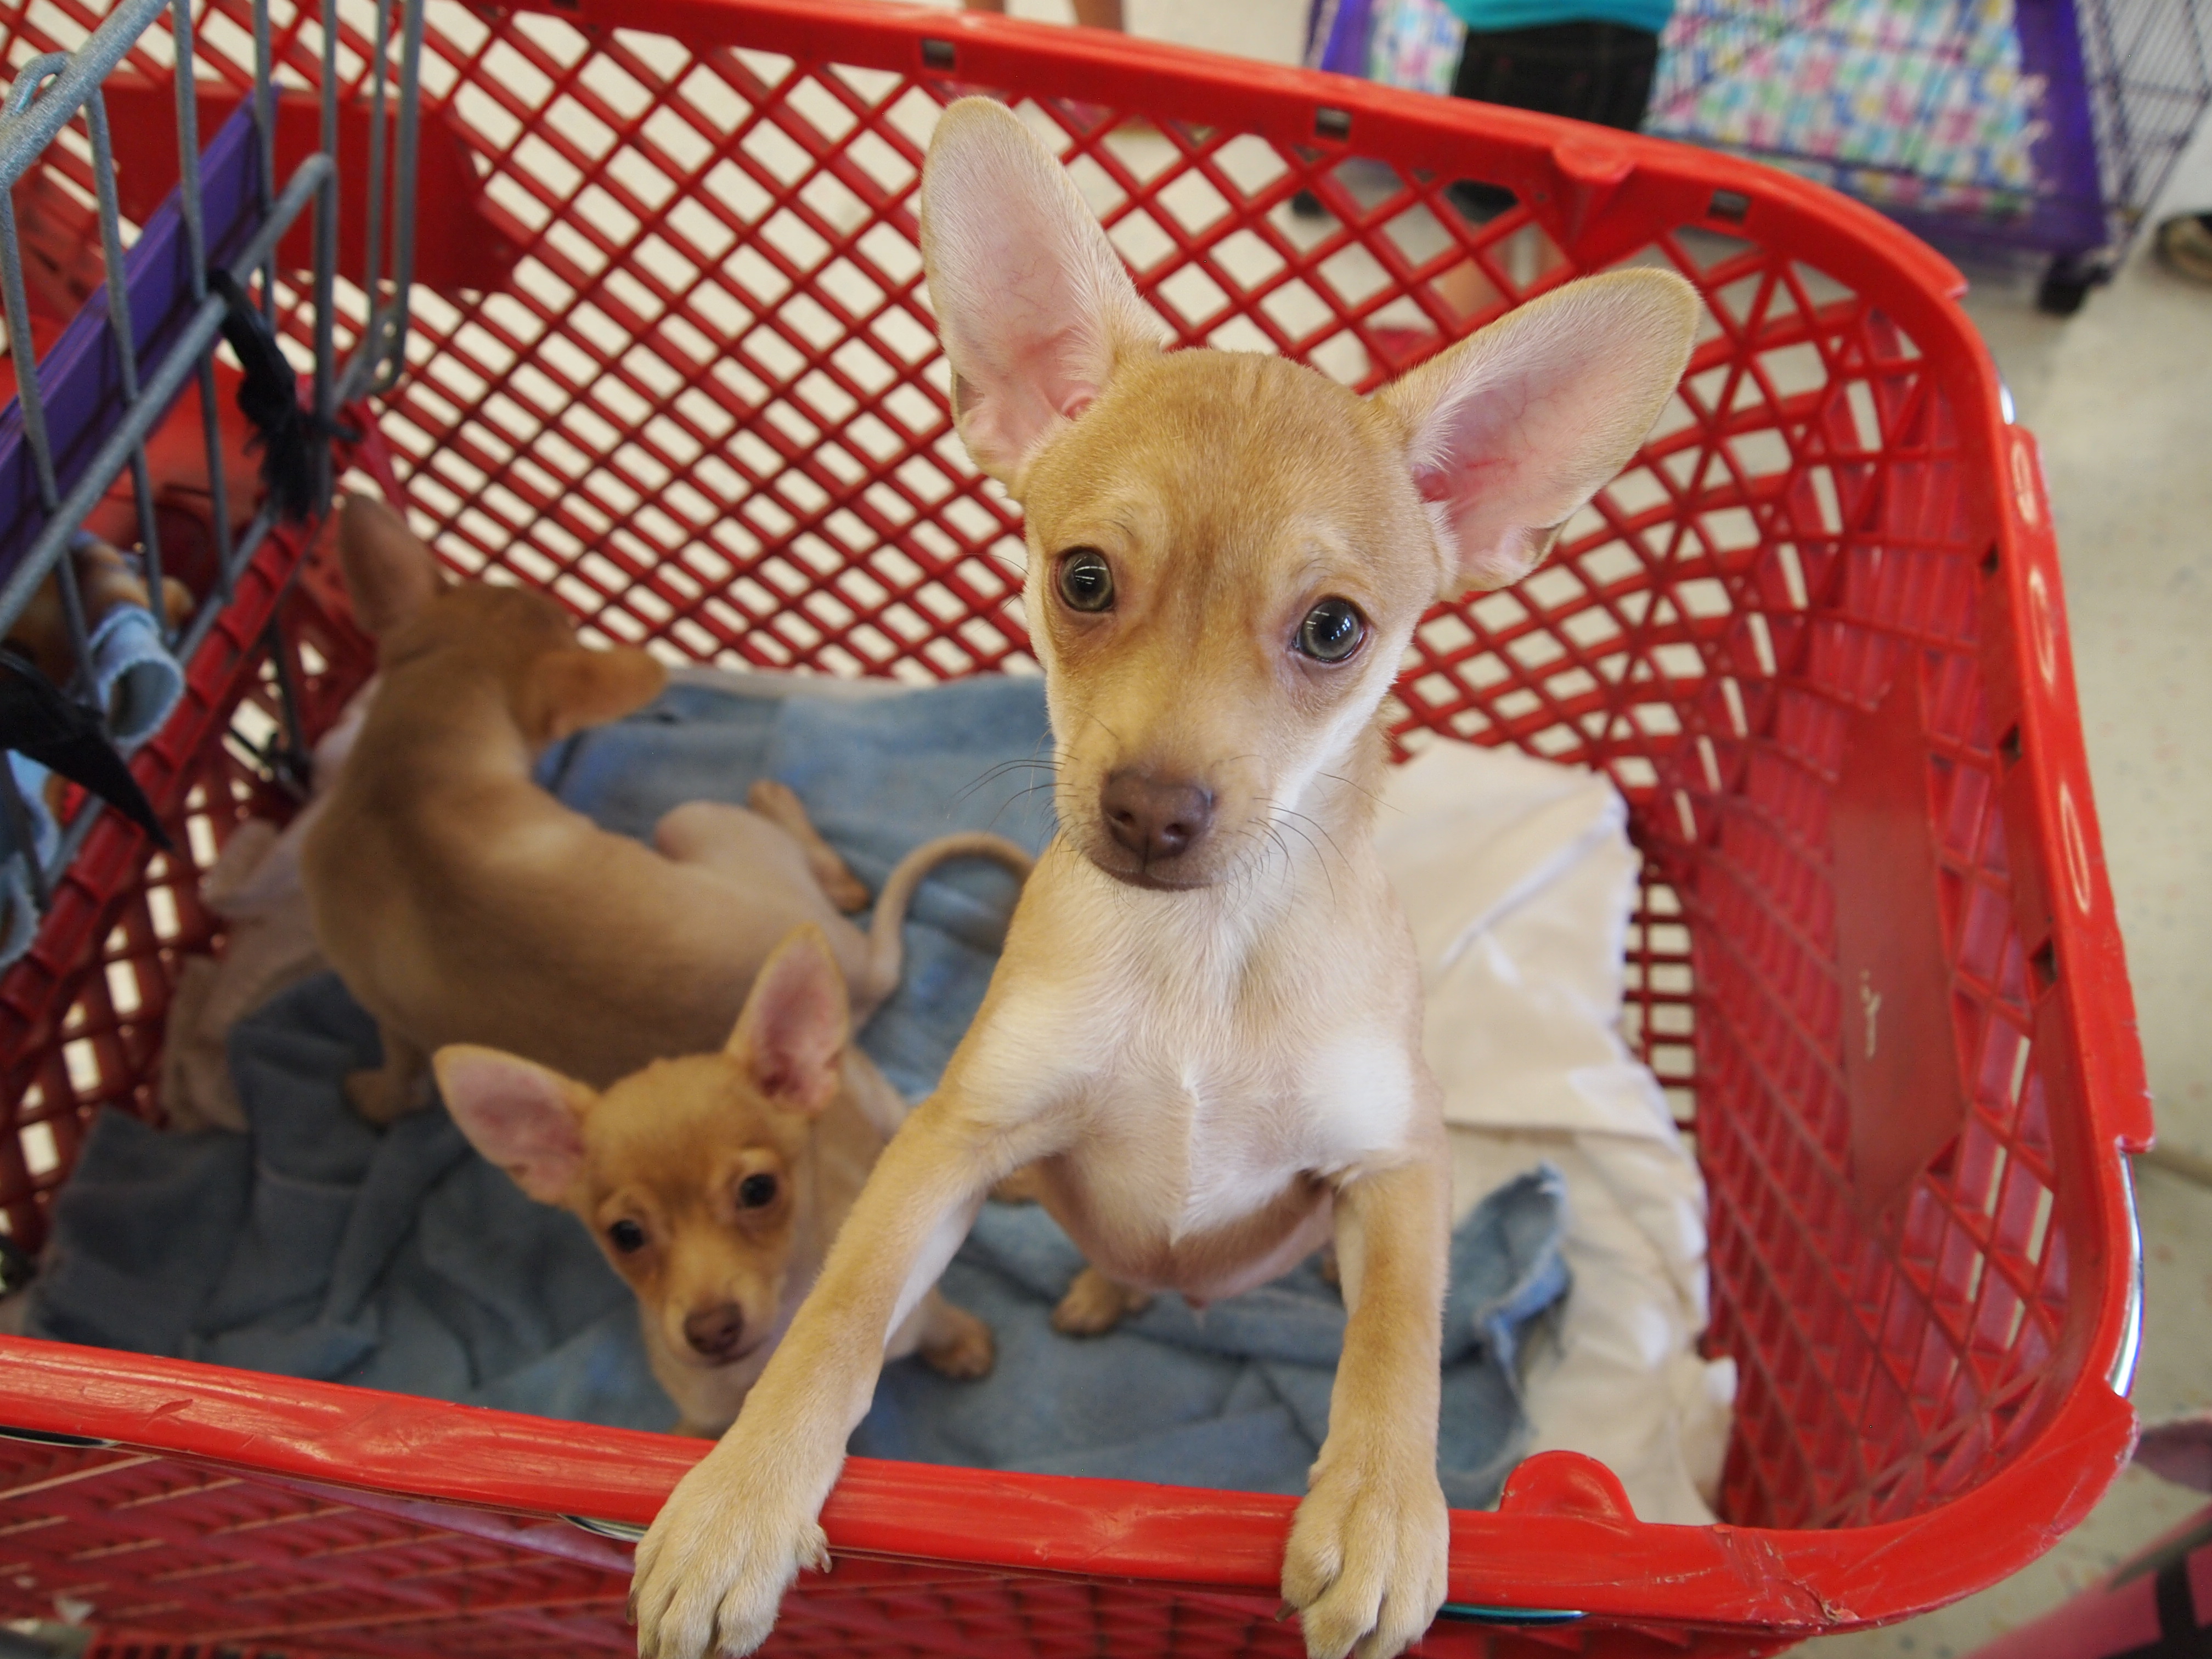 Puppies in a cart